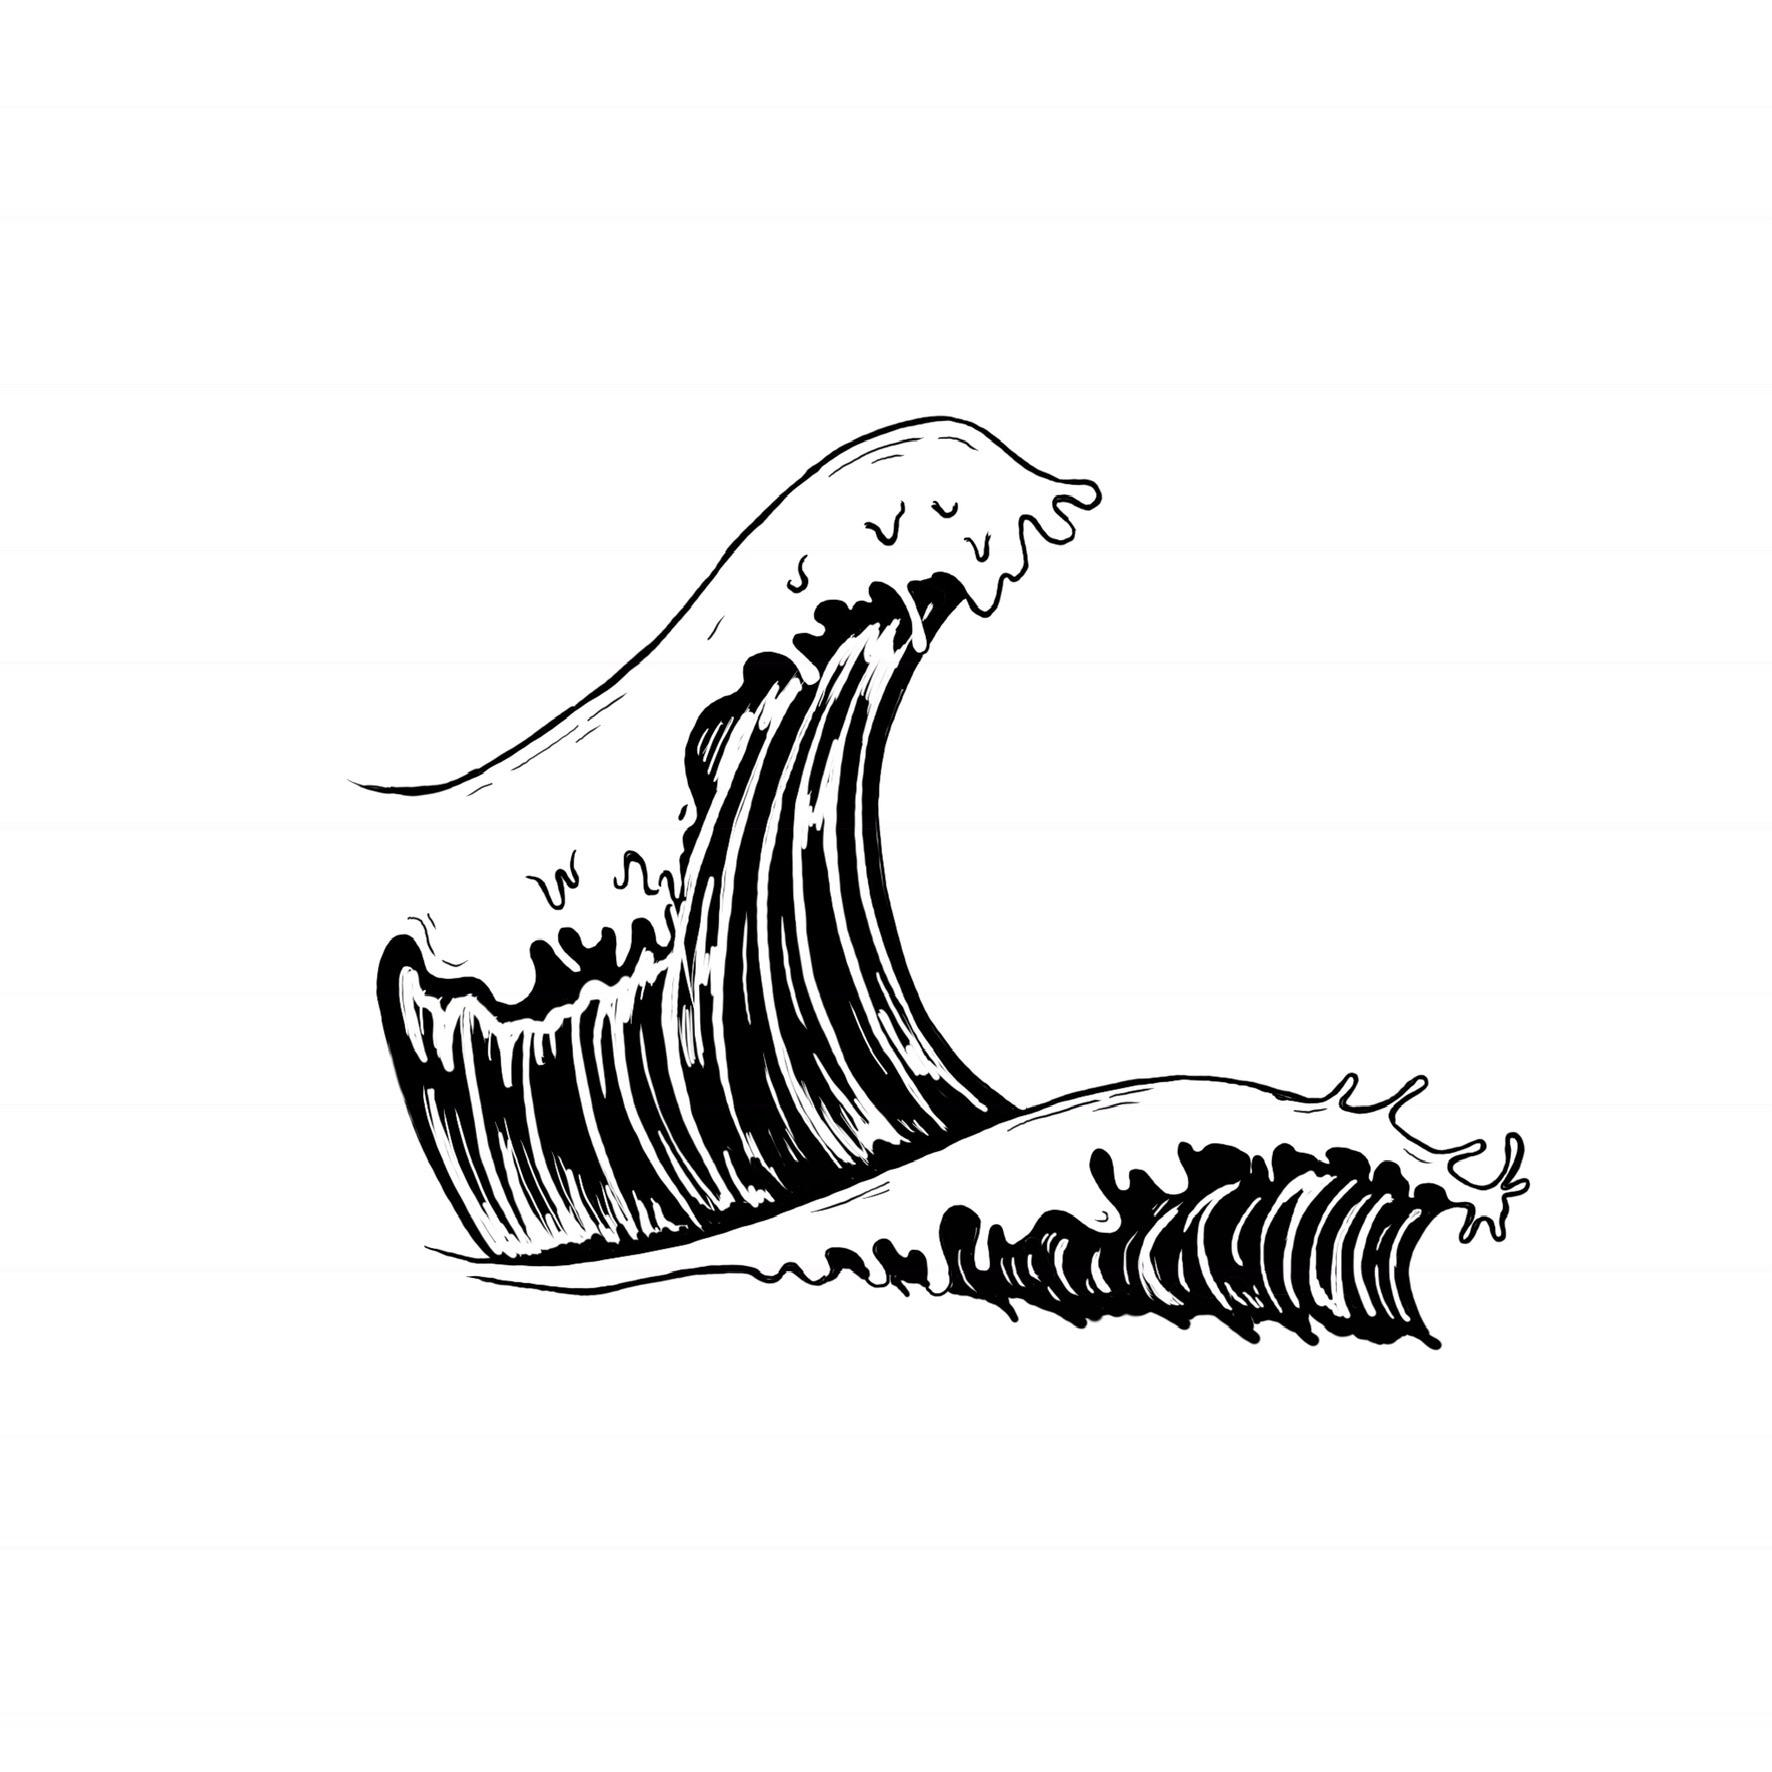 Wave doodle clipart clipart black and white Wave study : doodles clipart black and white